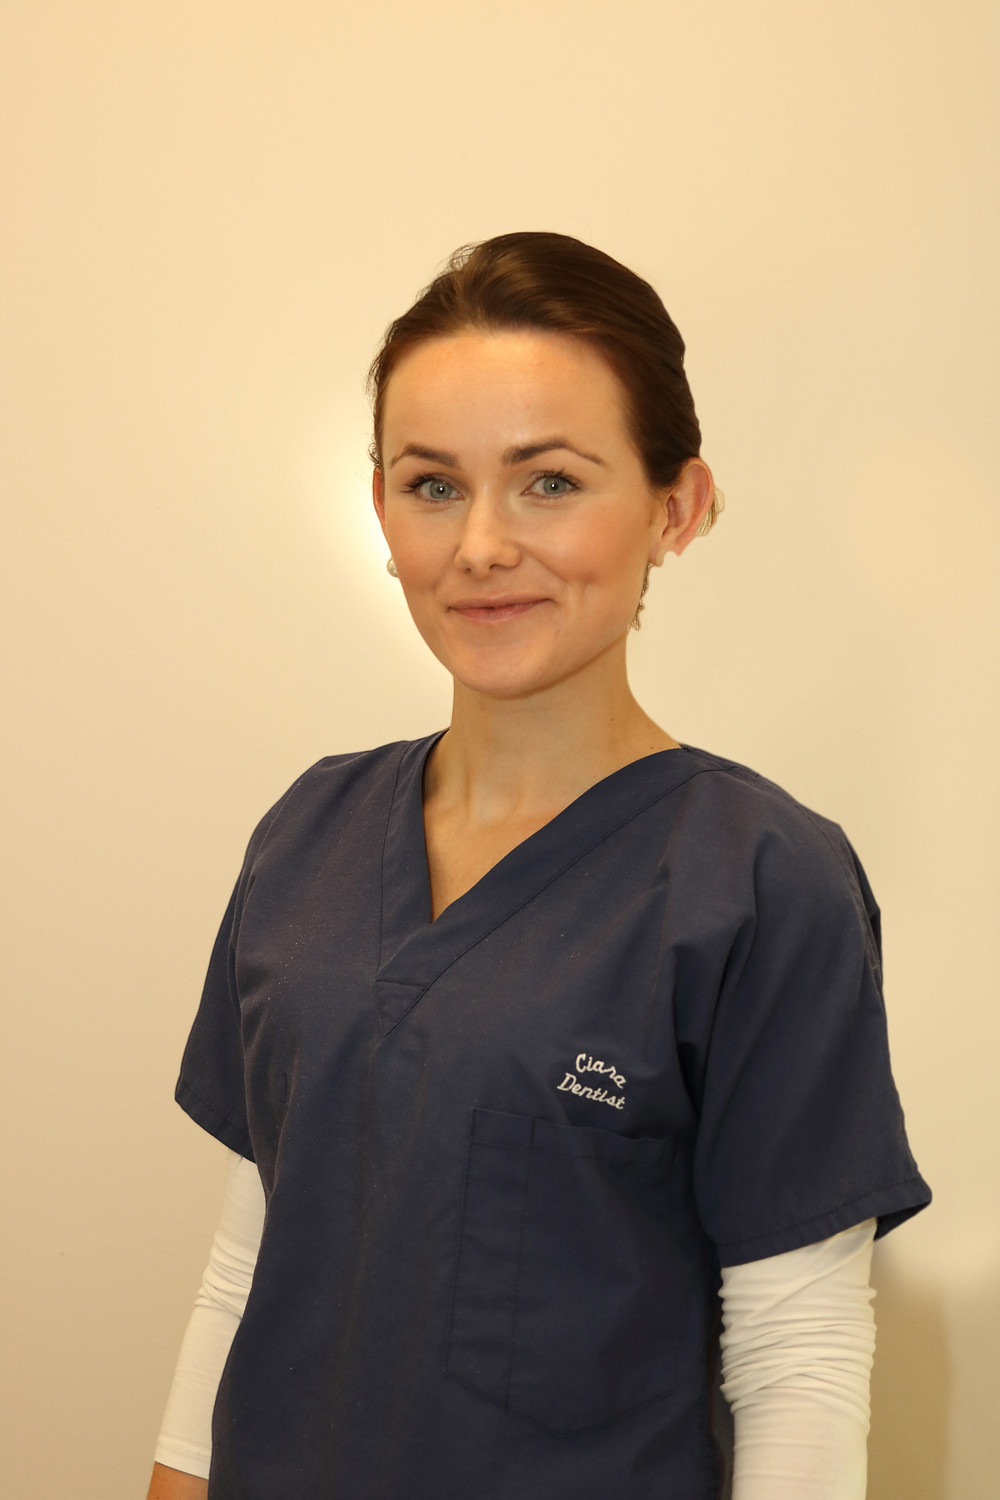 Dr Ciara Sutherland, Dentist at City Health Clinic, expert in nervous patients